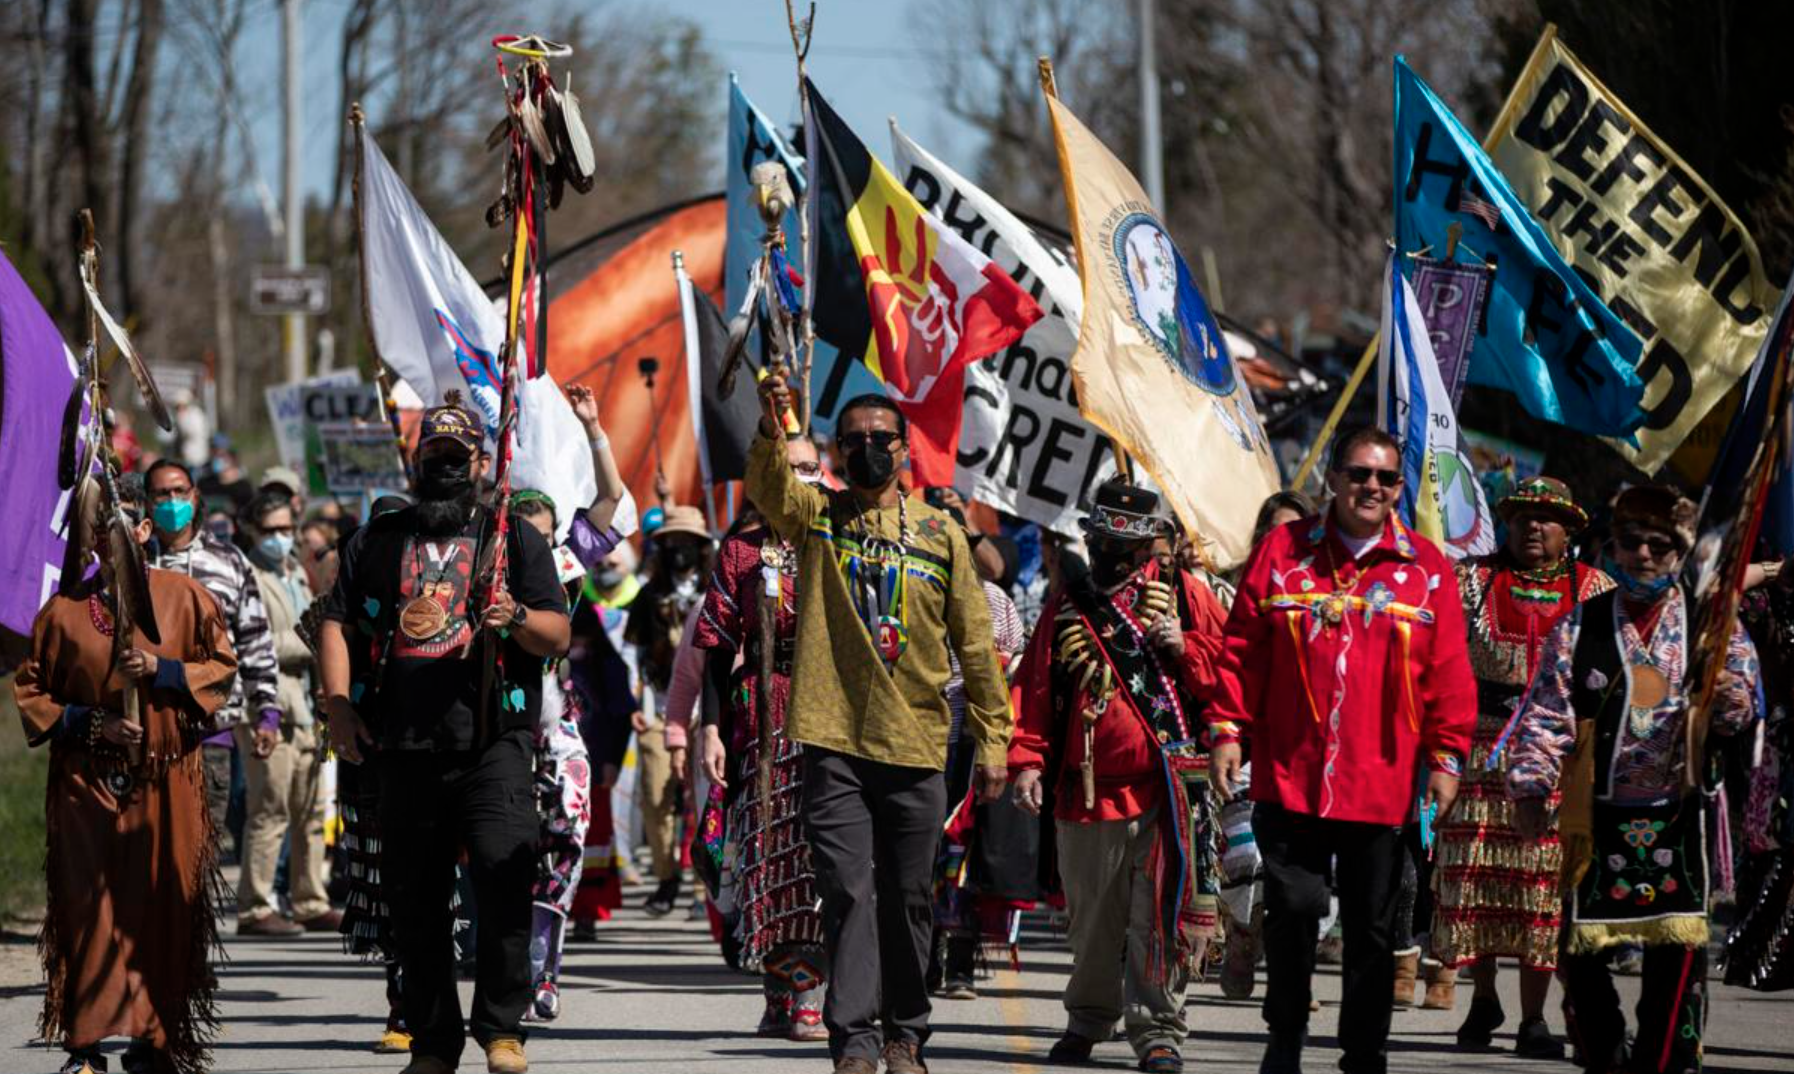 """Indigenous-led march to """"Evict Enbridge"""" Line 5 pipeline from Straits of Mackinac on May 13, 2021 (Photo: Mike Krebs / Record Eagle)"""